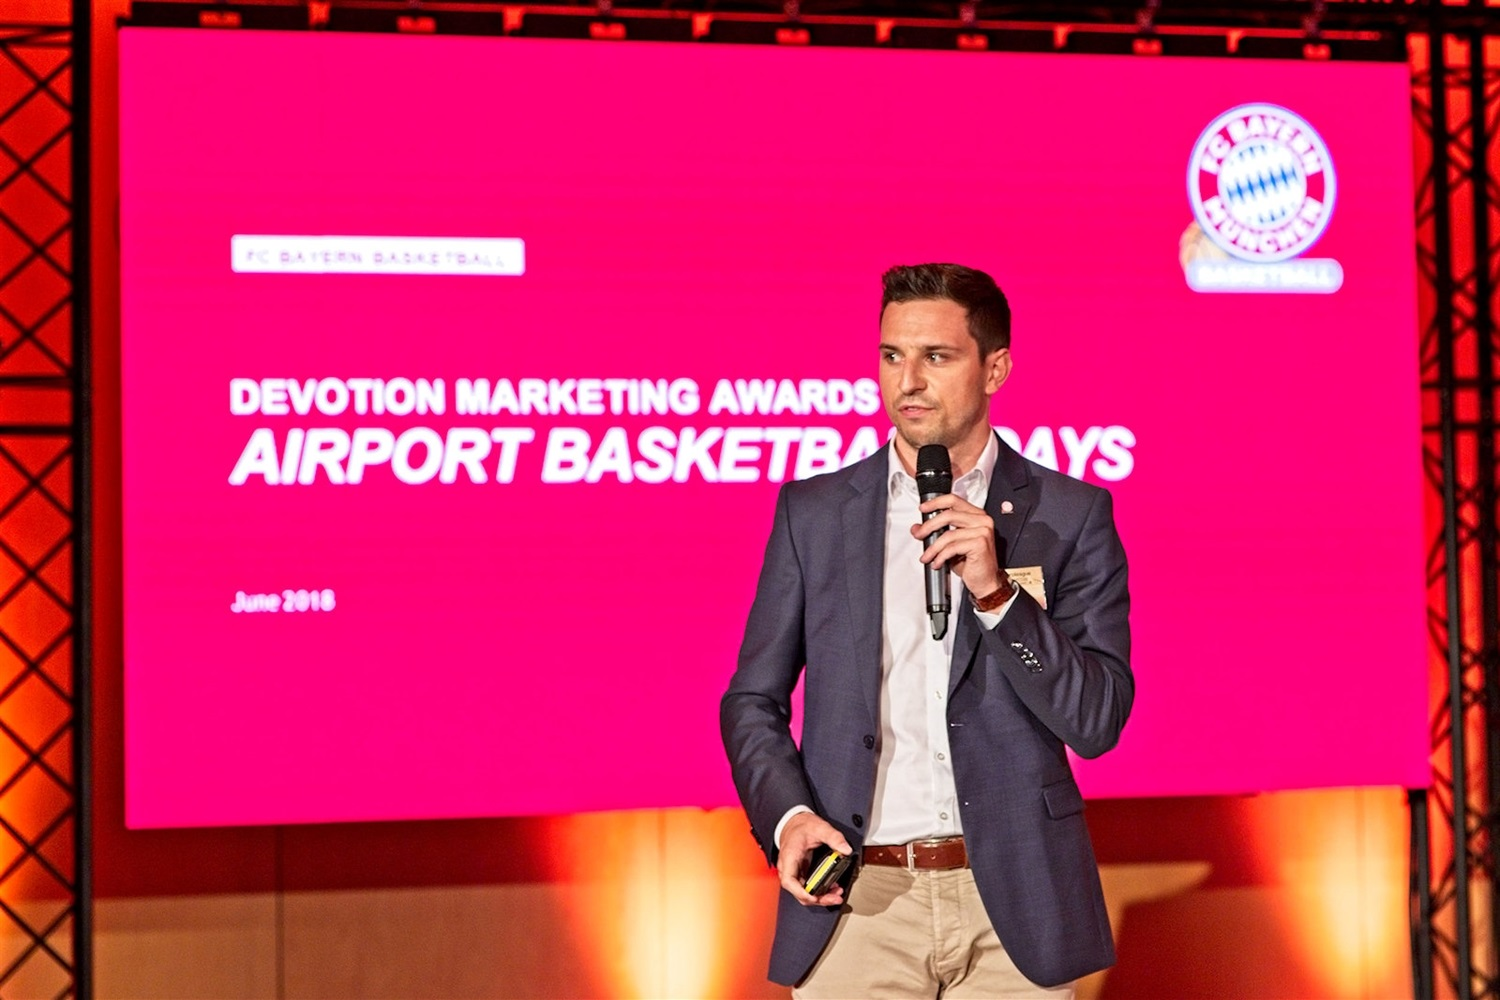 Robin Gollbach, FC Bayern Munich - Gold Devotion - EB Summit Barcelona 2018 - EB18